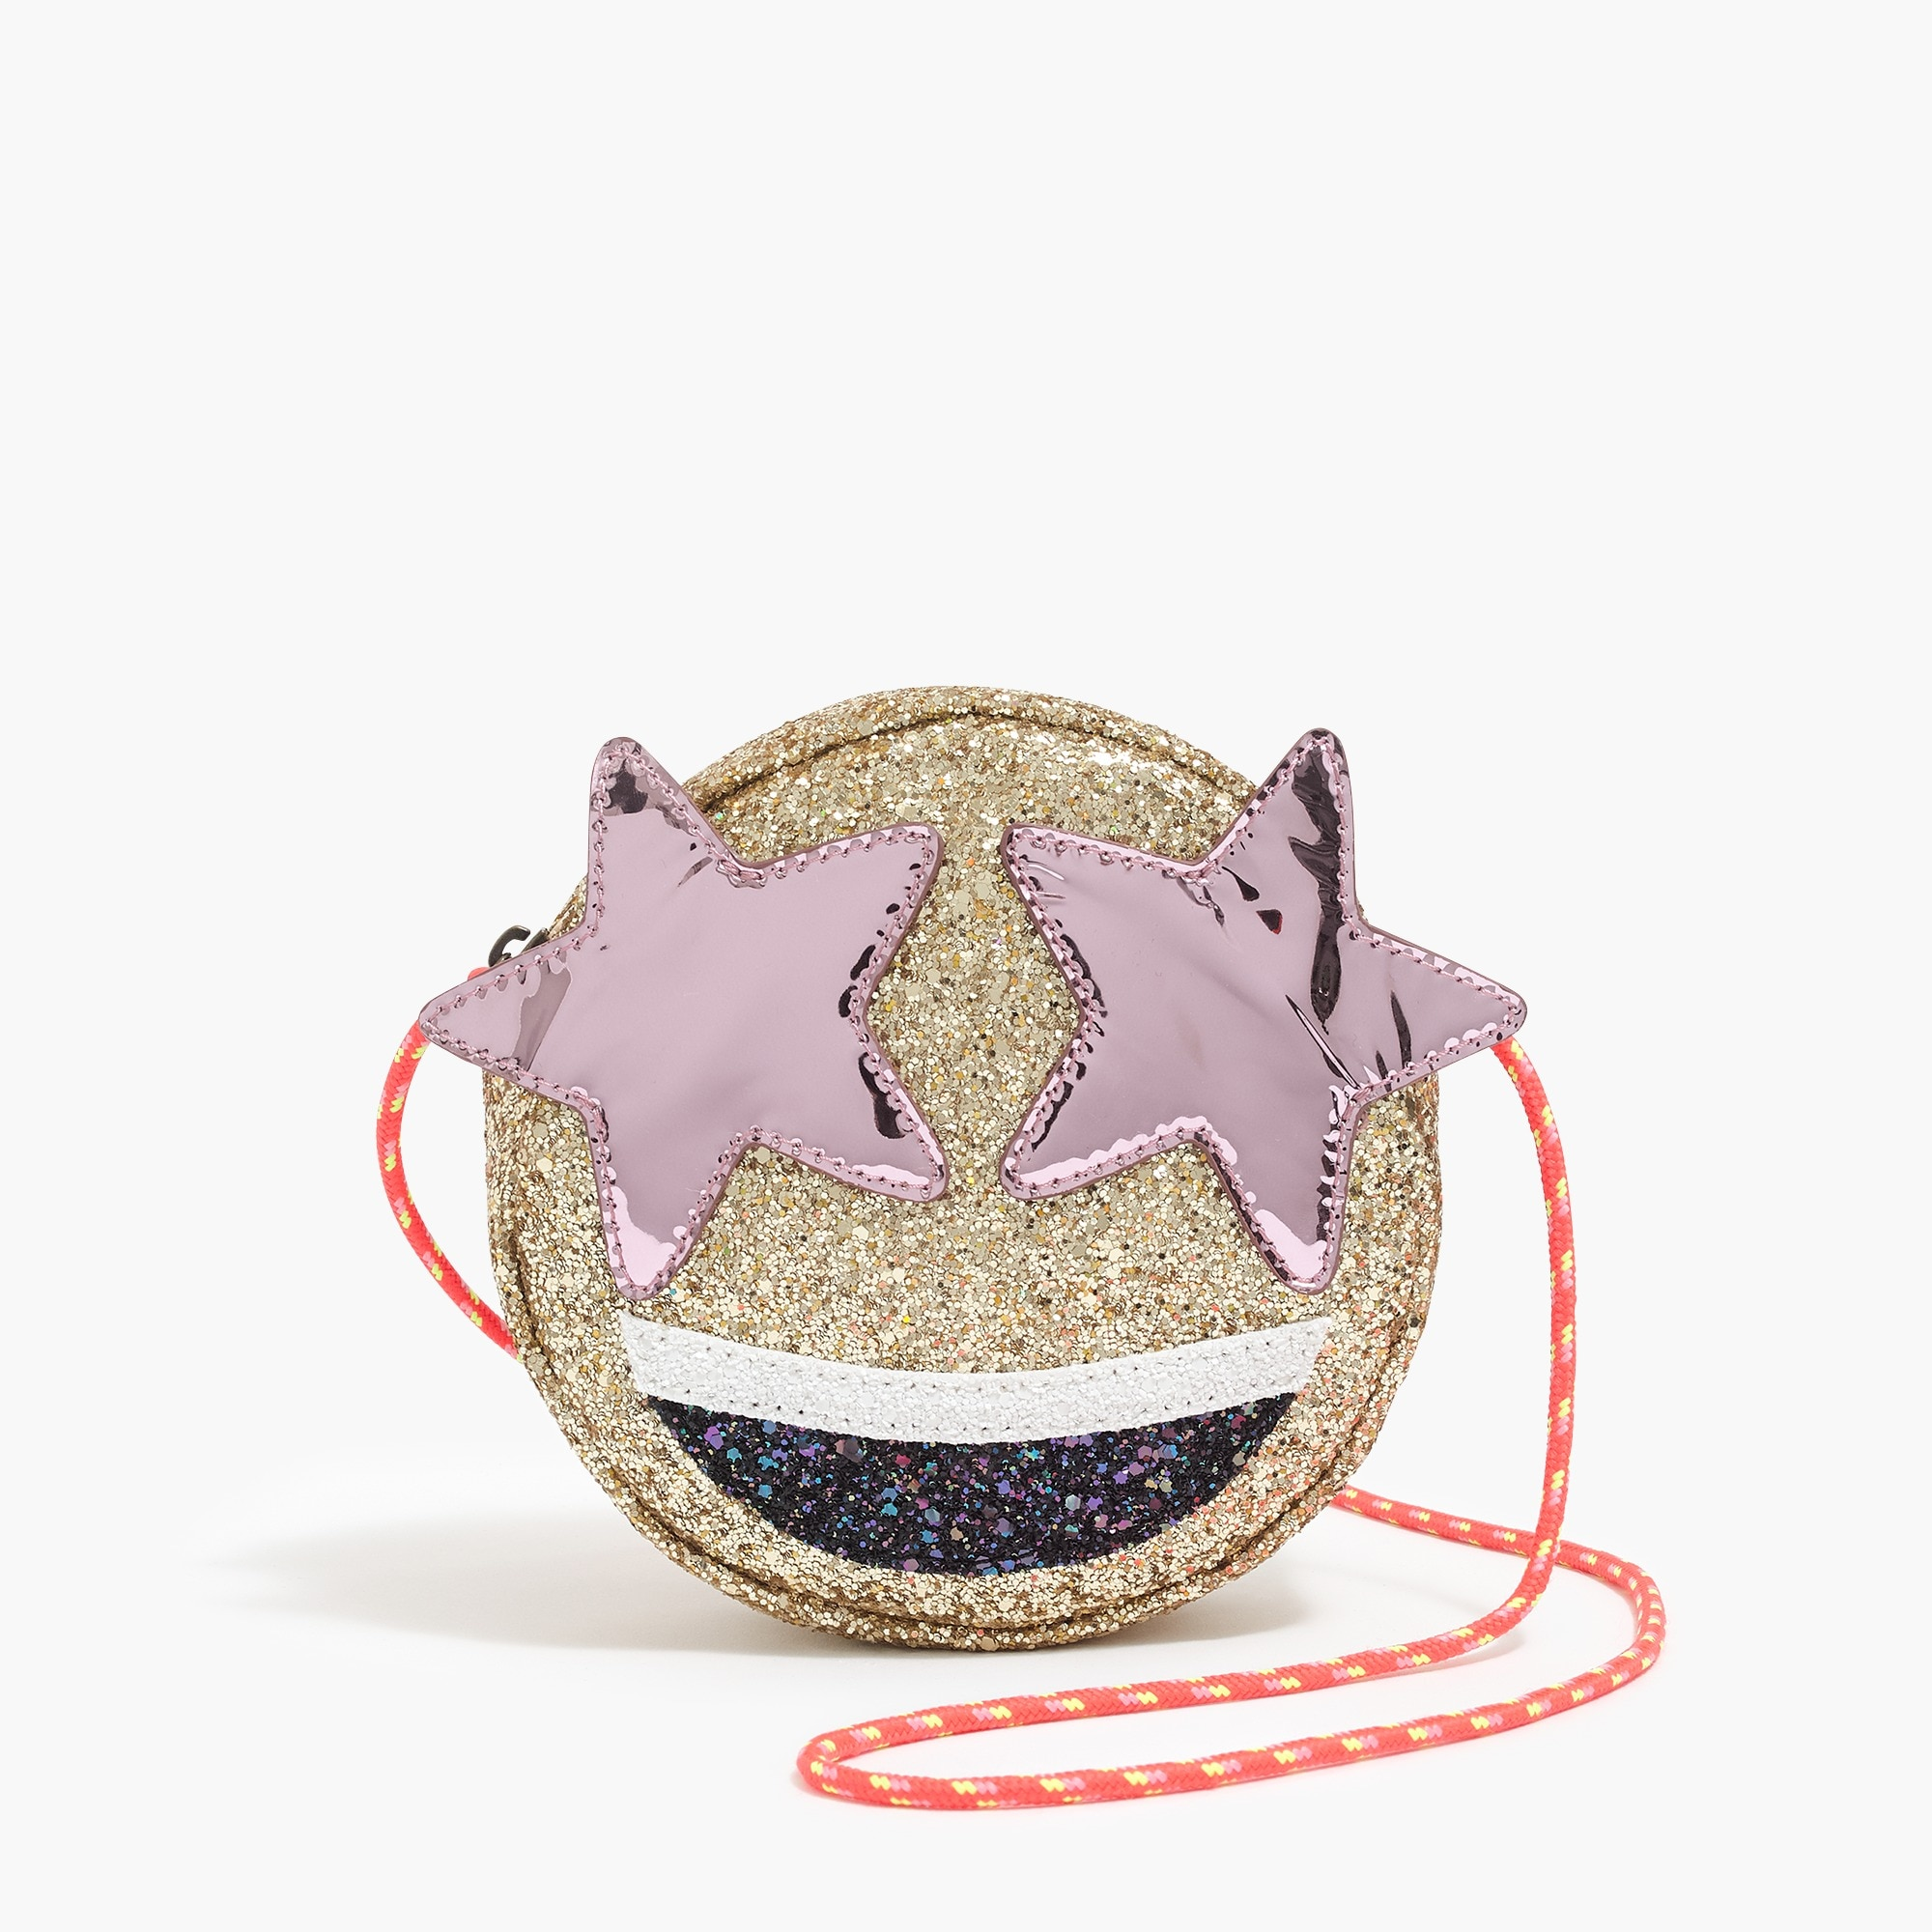 Star eyes emoji bag